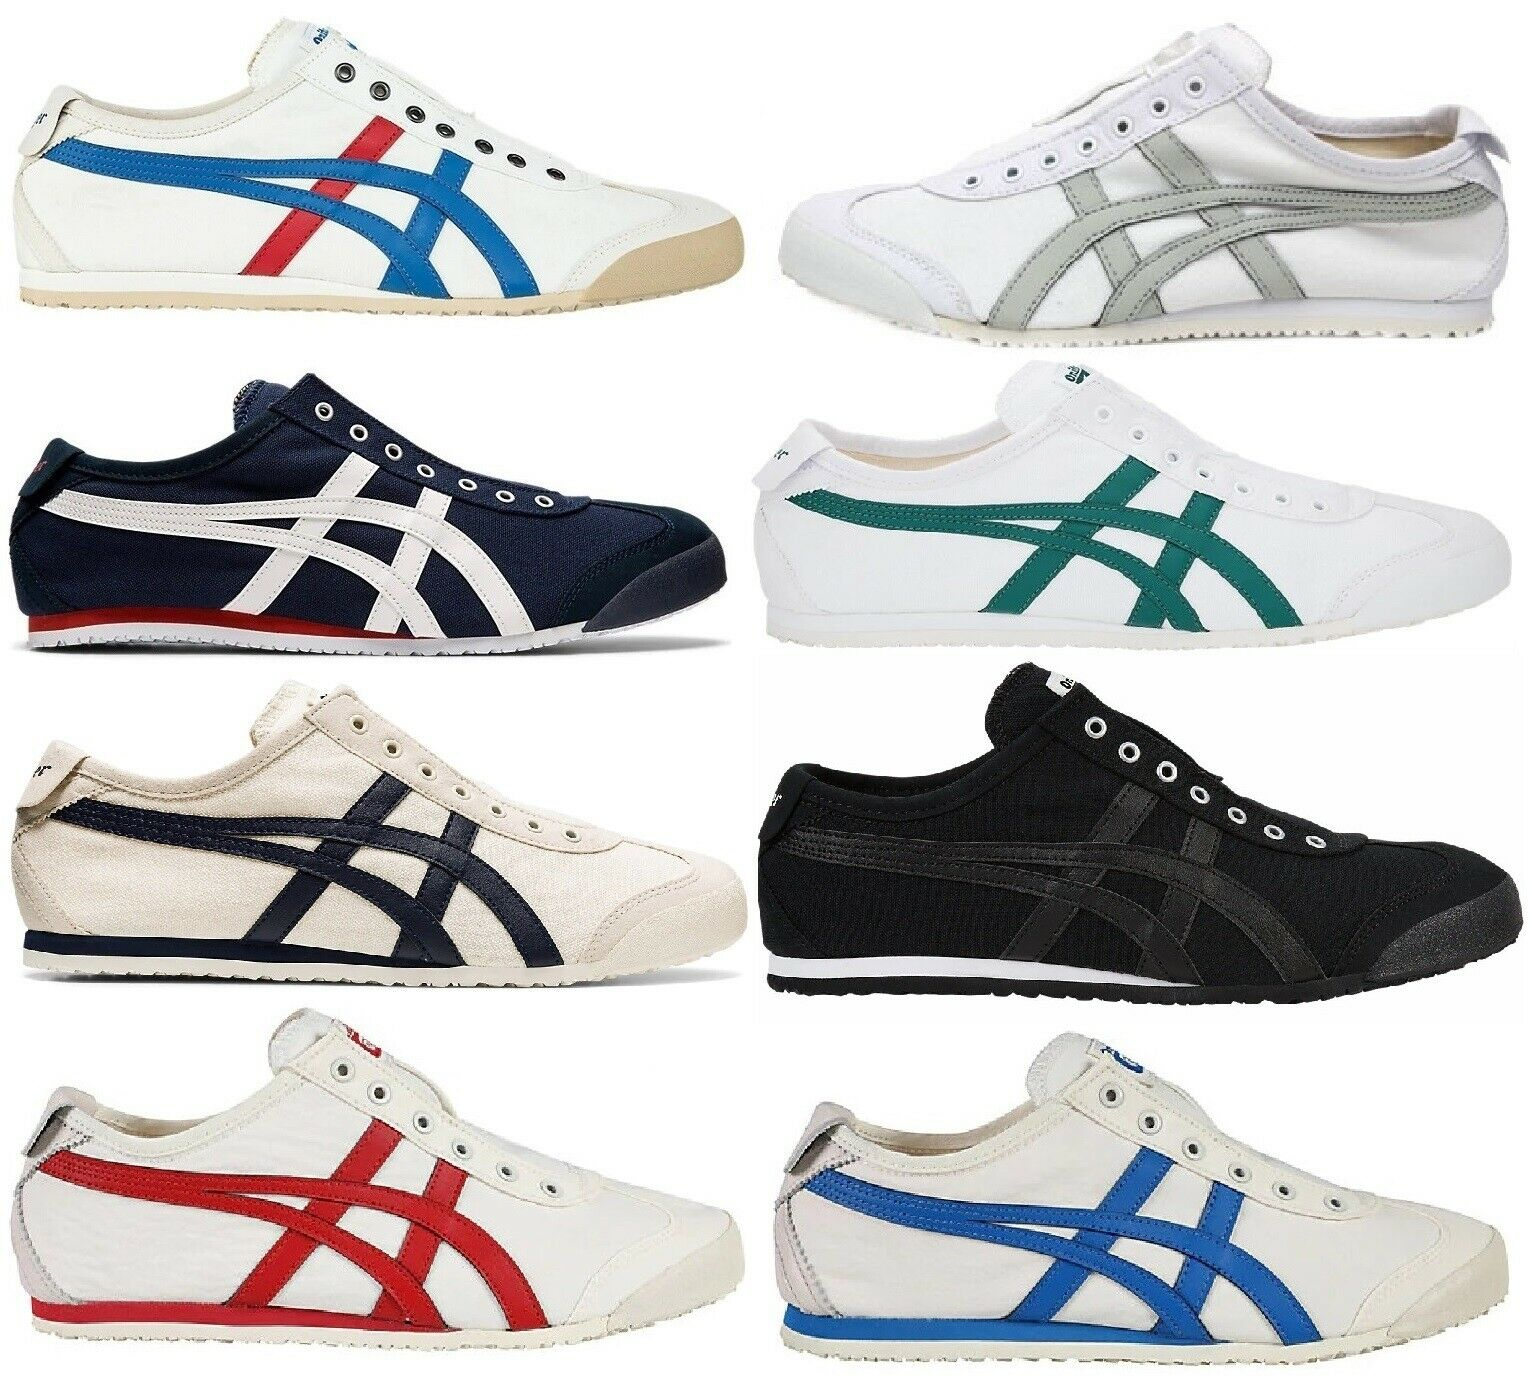 asics buty without laces where can i